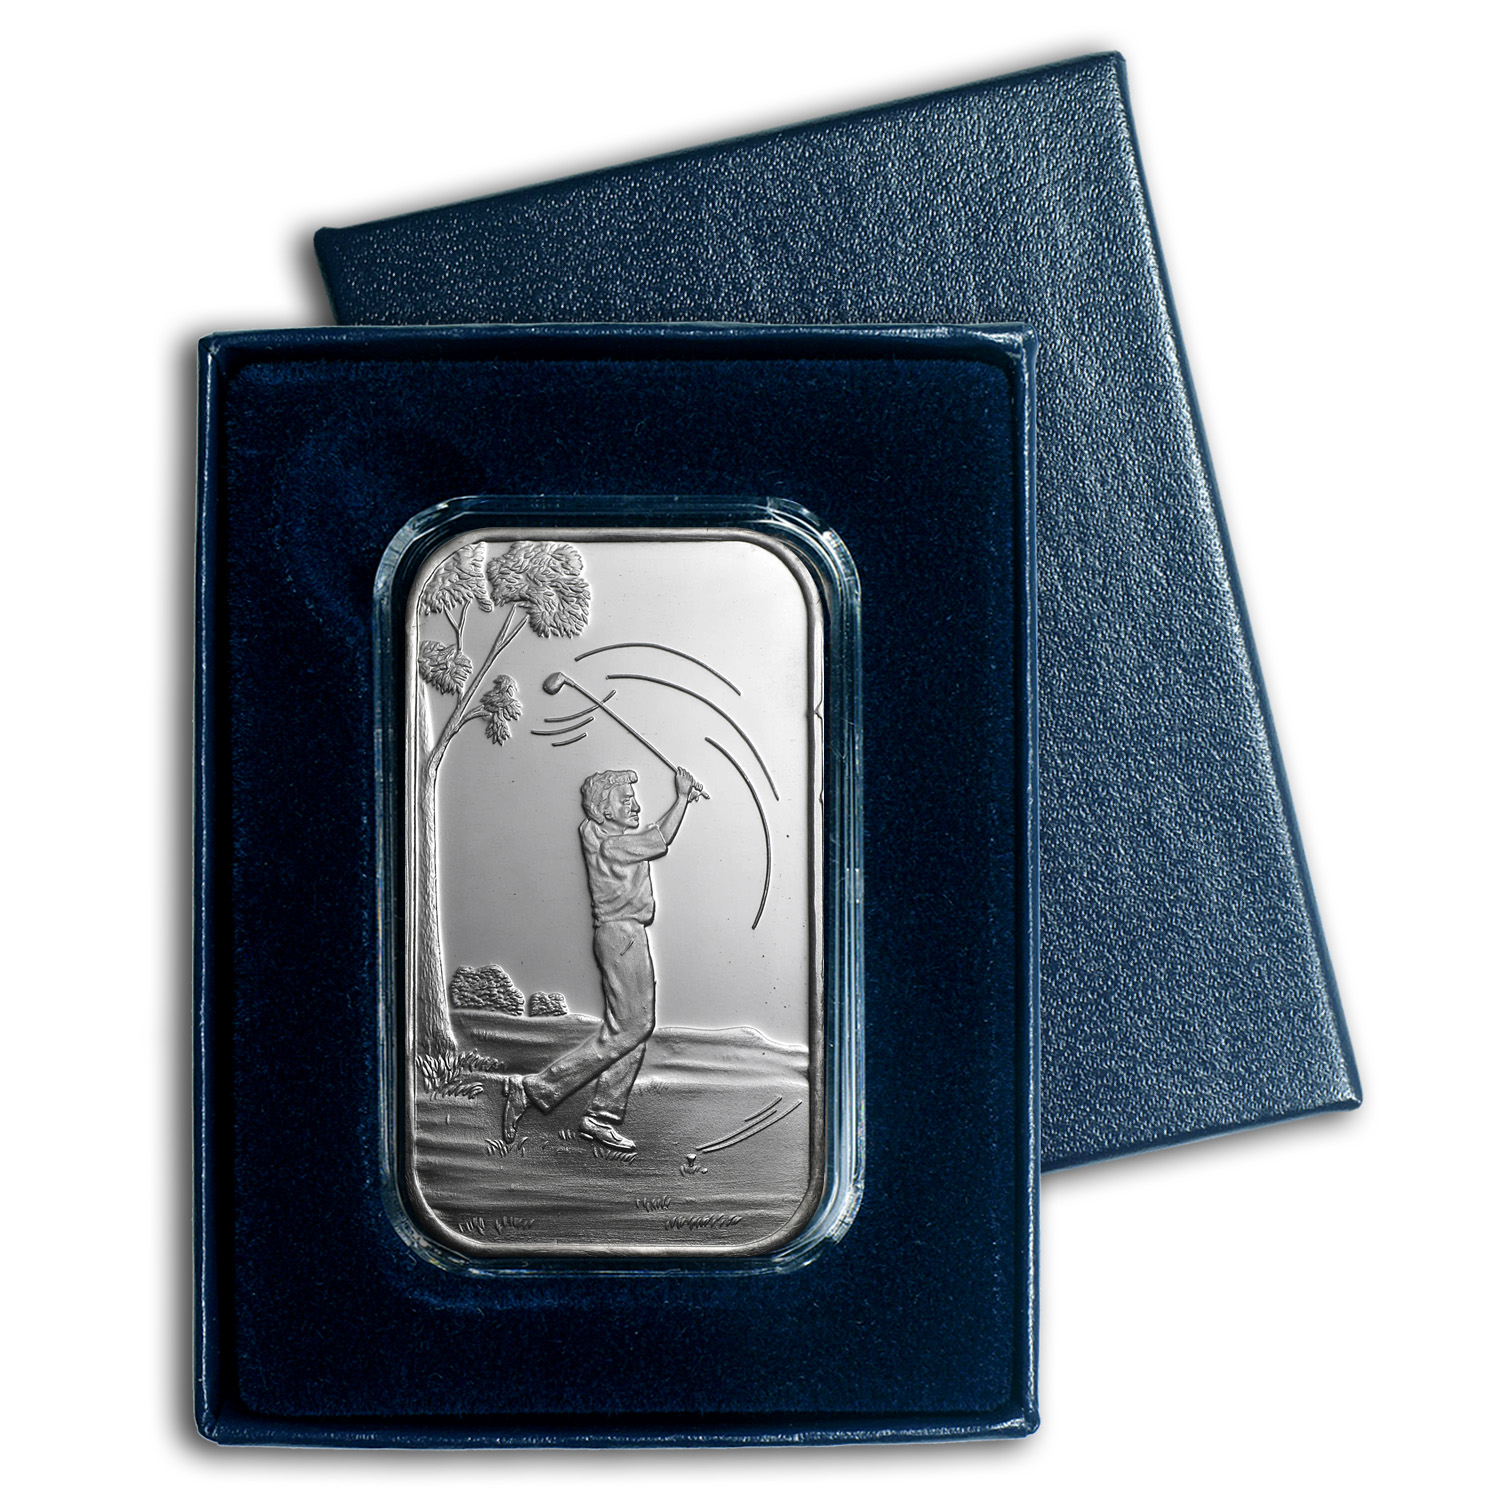 1 oz Silver Bars - Male Golfer (w/Gift Box & Capsule)